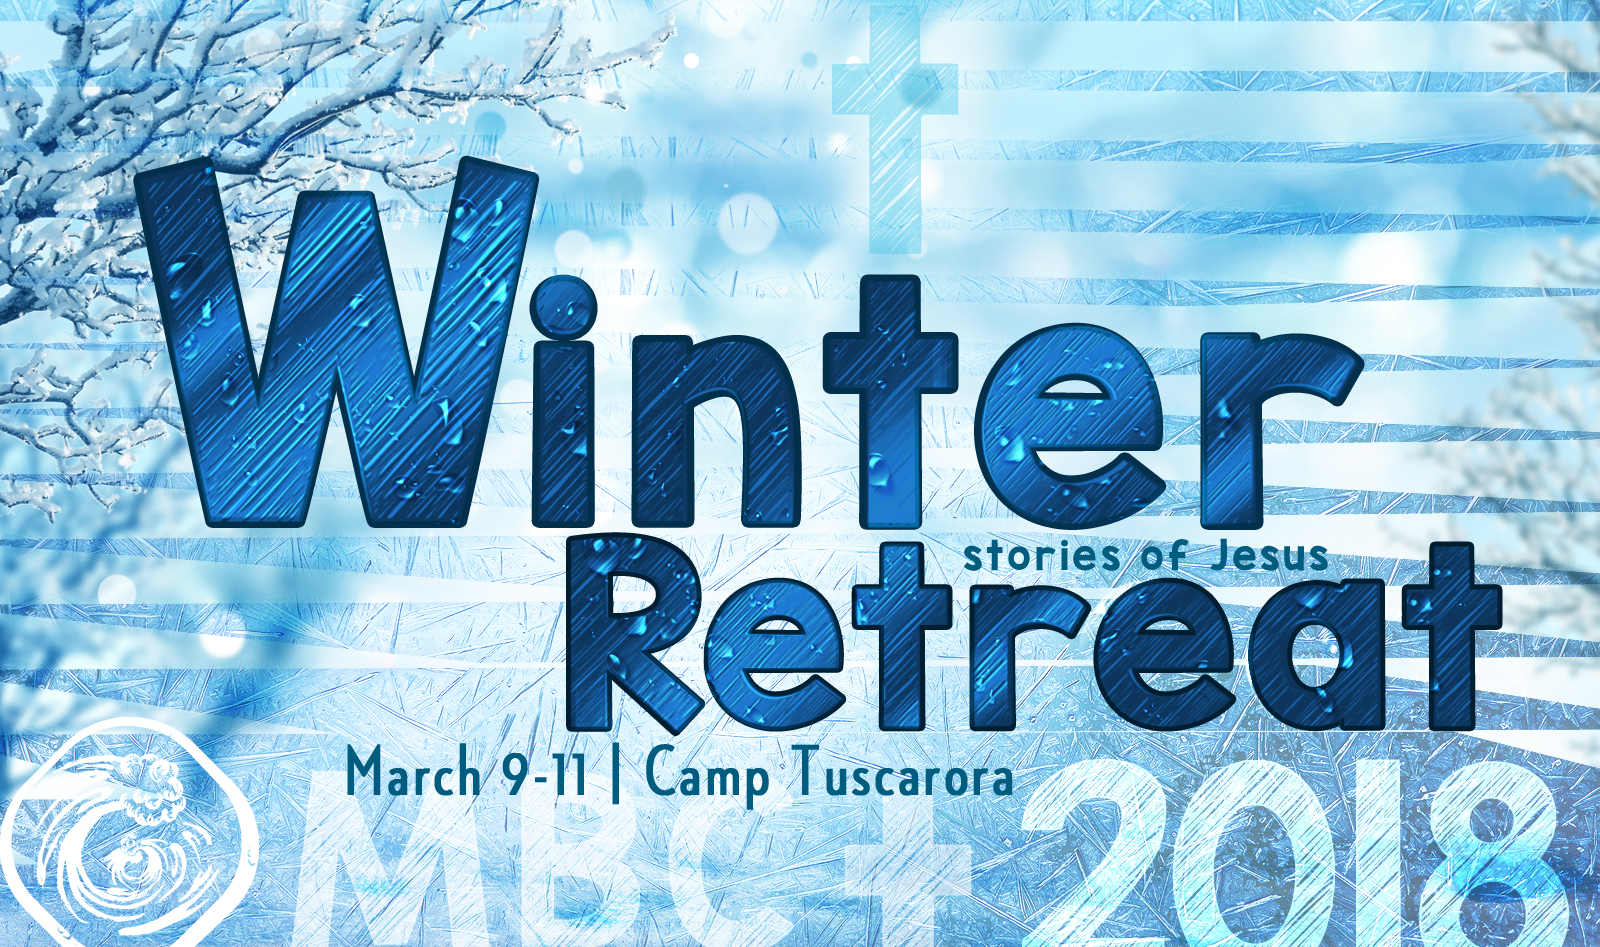 Hs winter retreat 169hd